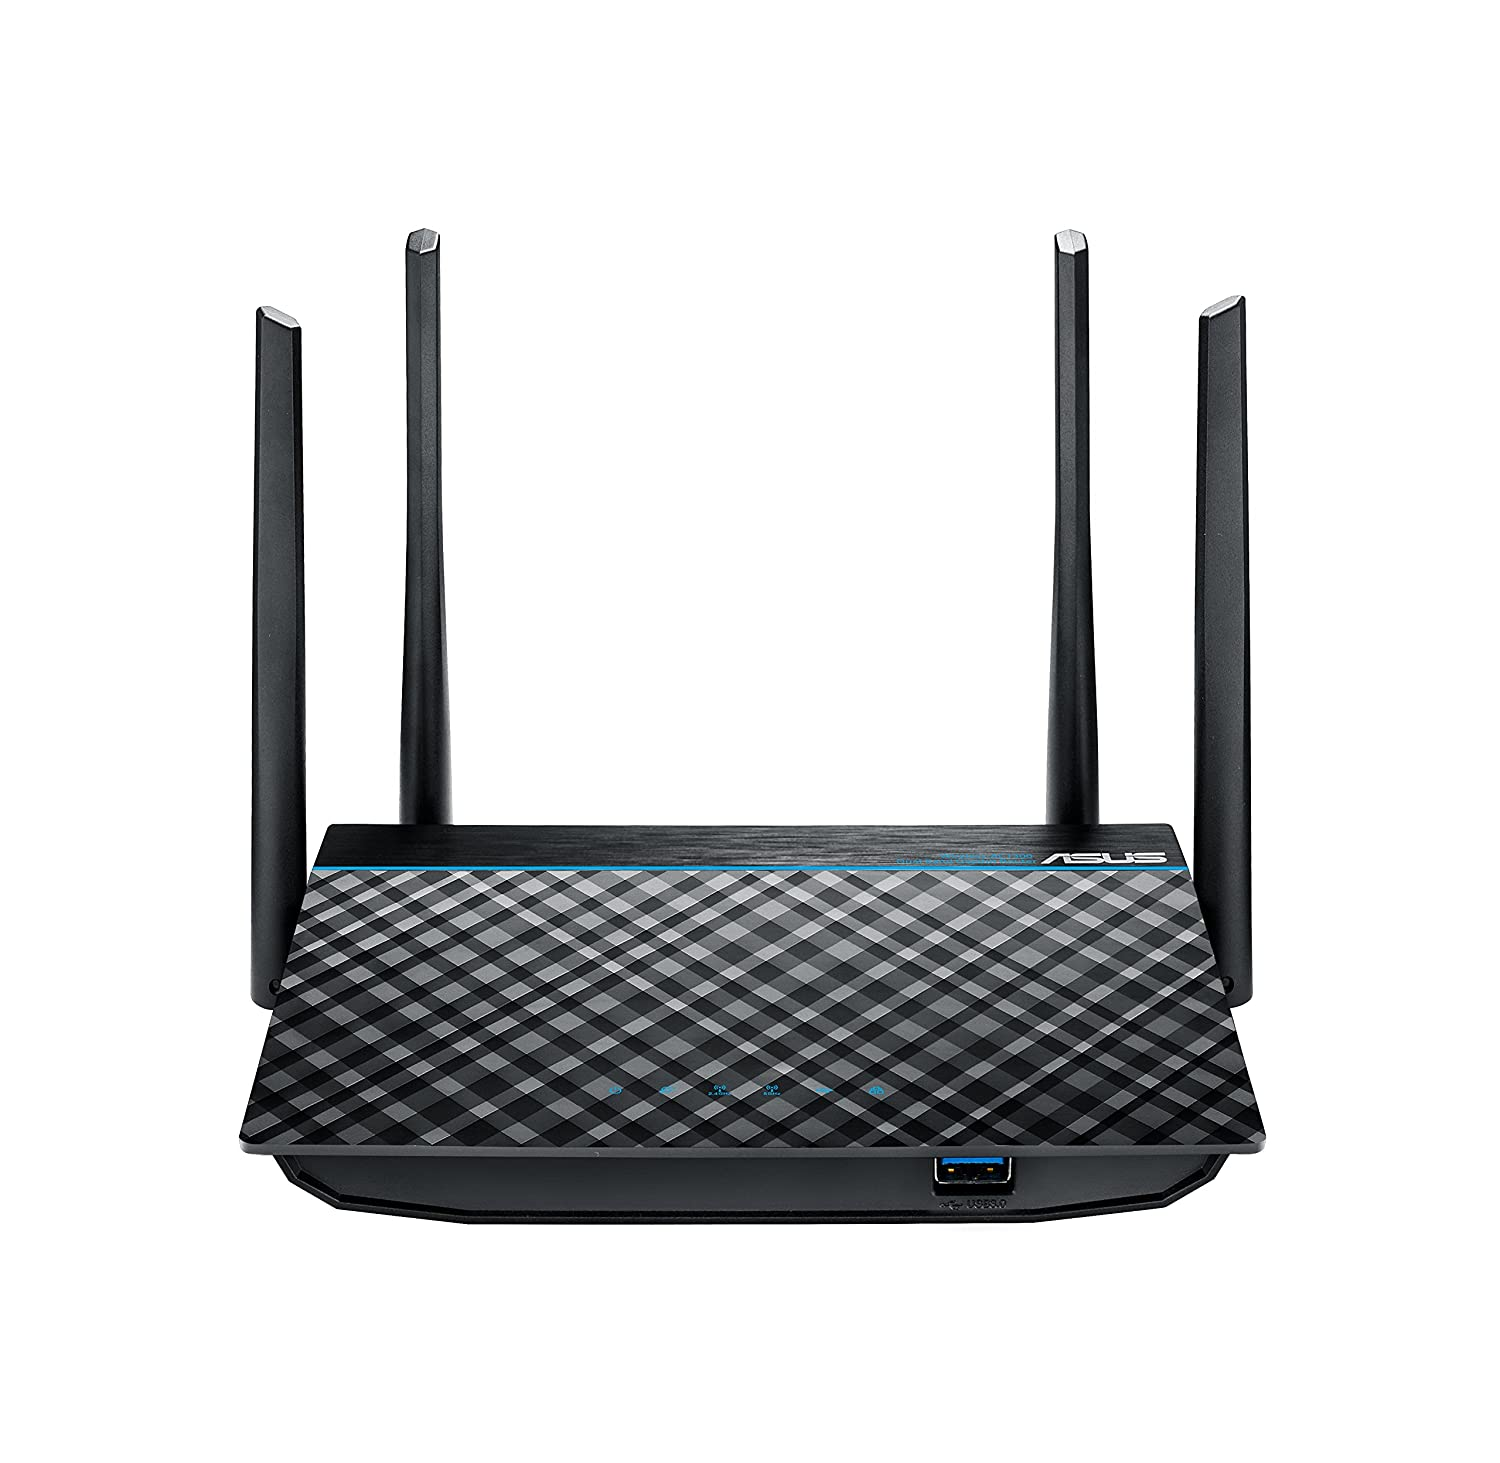 ASUS Dual-Band 2x2 AC1300 Super-Fast Wifi 4-port Gigabit Router with MU-MIMO and USB 3.0 (RT-ACRH13)